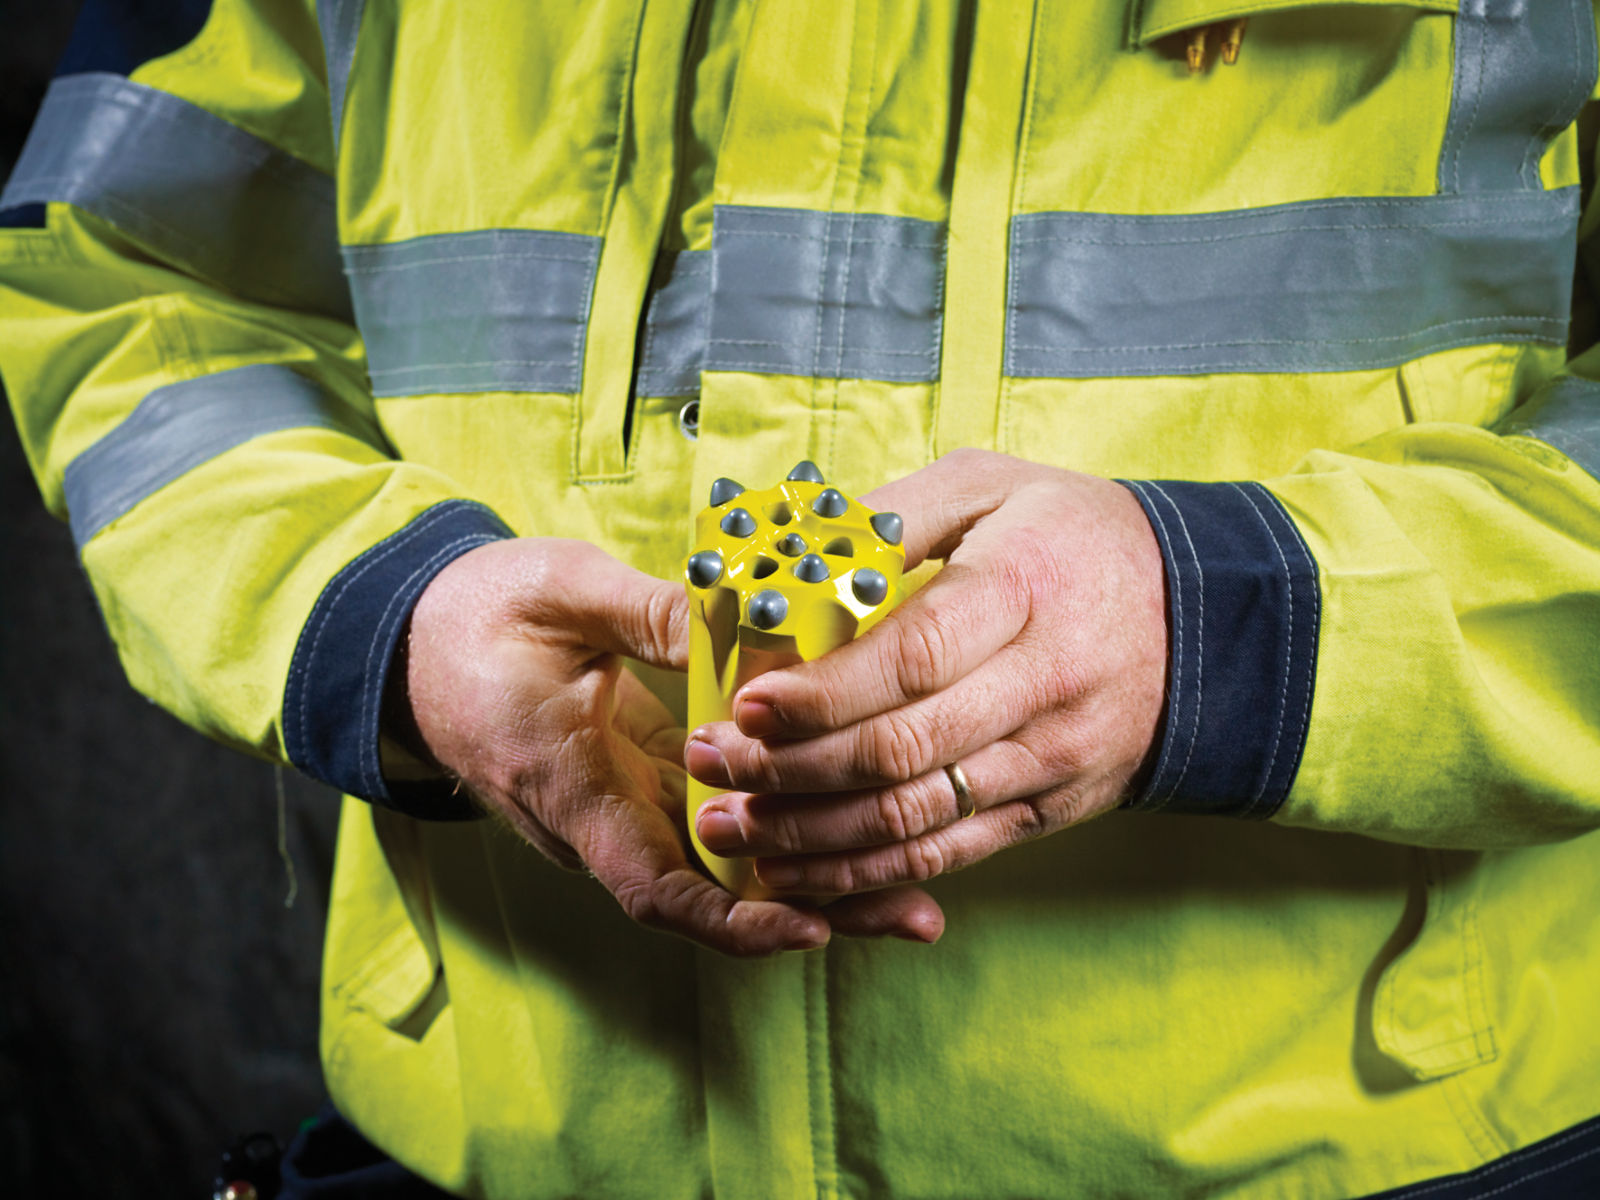 Rock drill specialist Secoroc in Fagersta, Sweden, with 1 750 employees, is acquired.